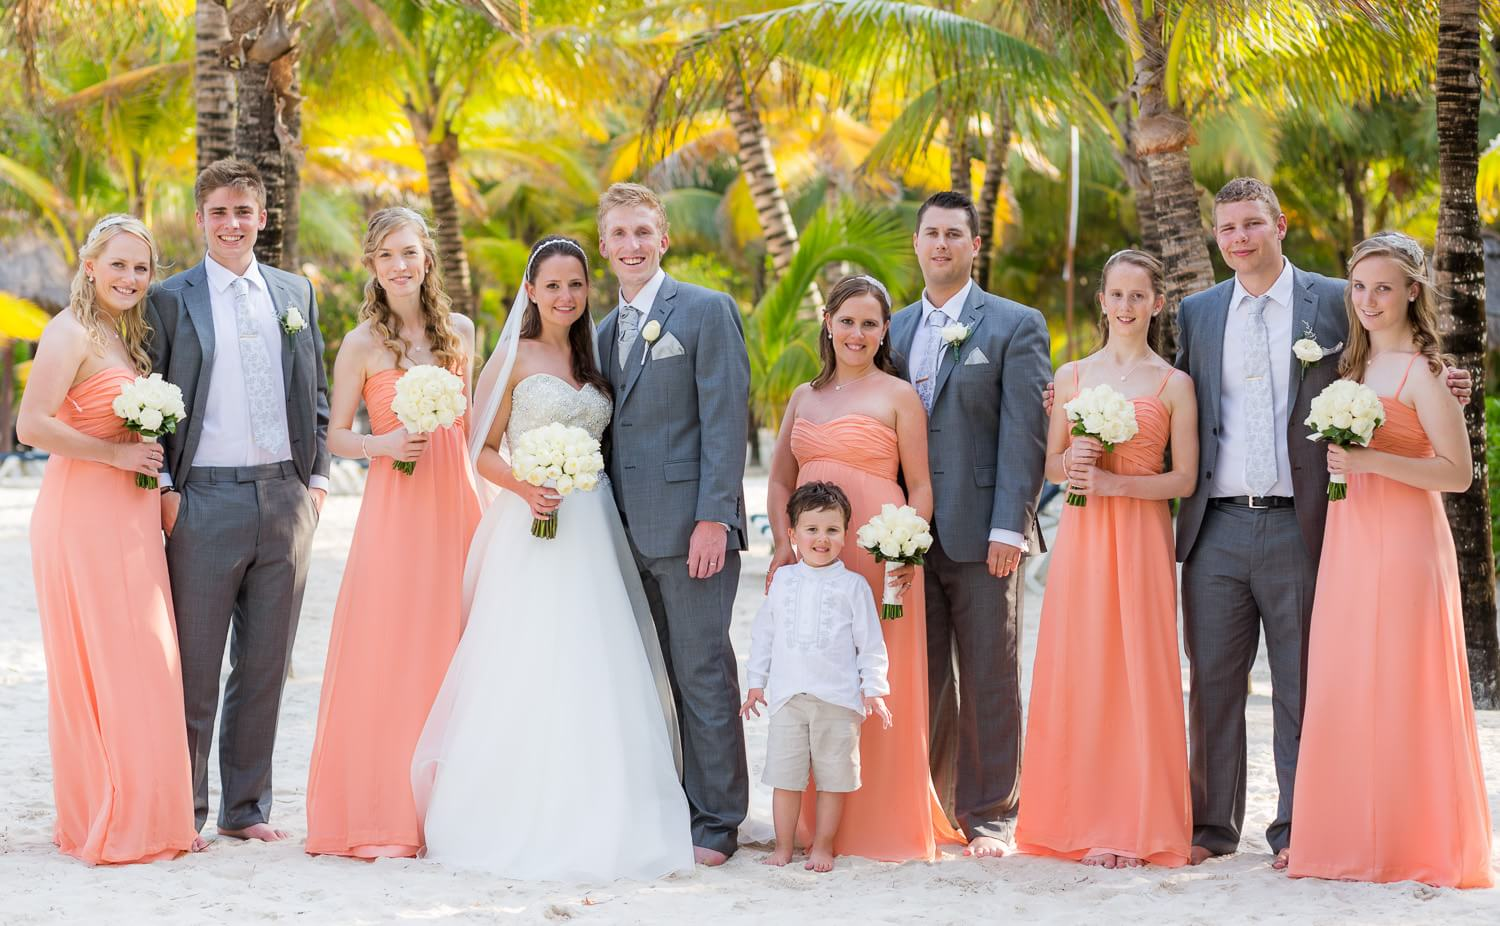 Bridal party on beach in Mexico